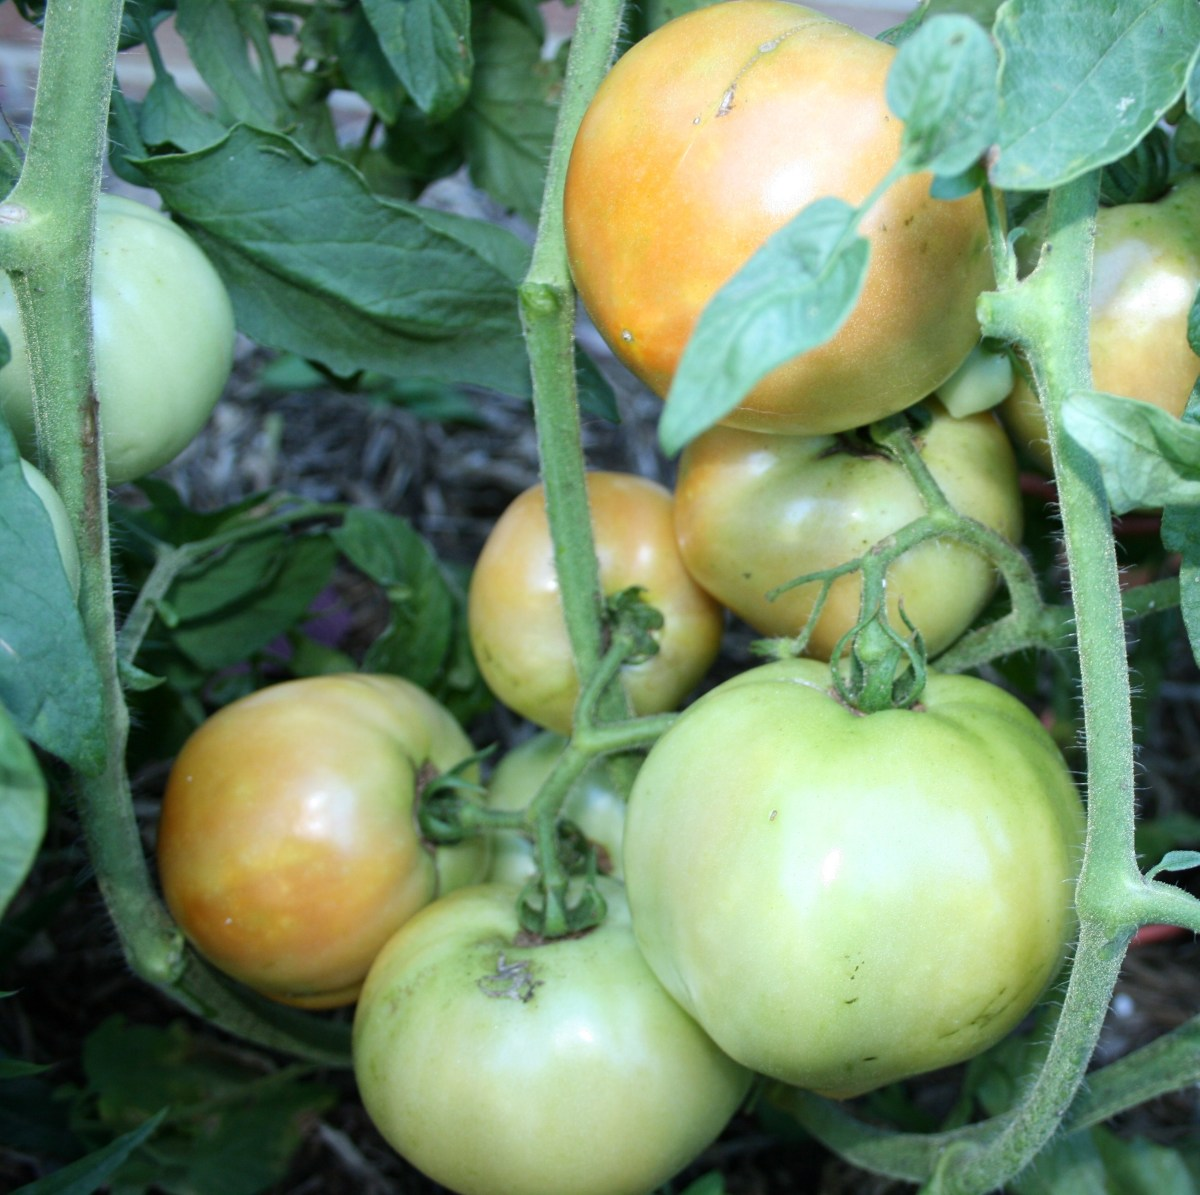 Large varieties of tomato plants can produce 8 lbs. of fruit or more at one time.